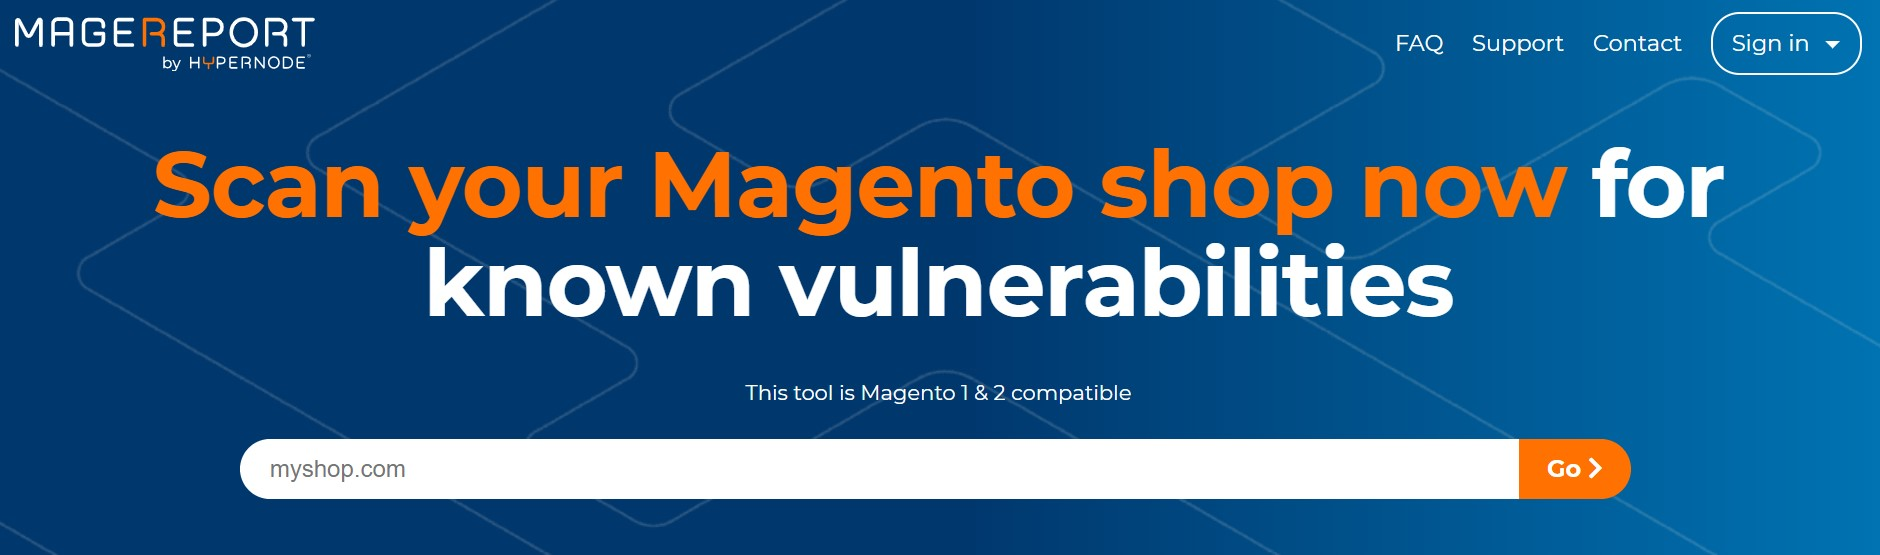 Check Whether Your Magento Website Has Been Hacked & Clean It Up